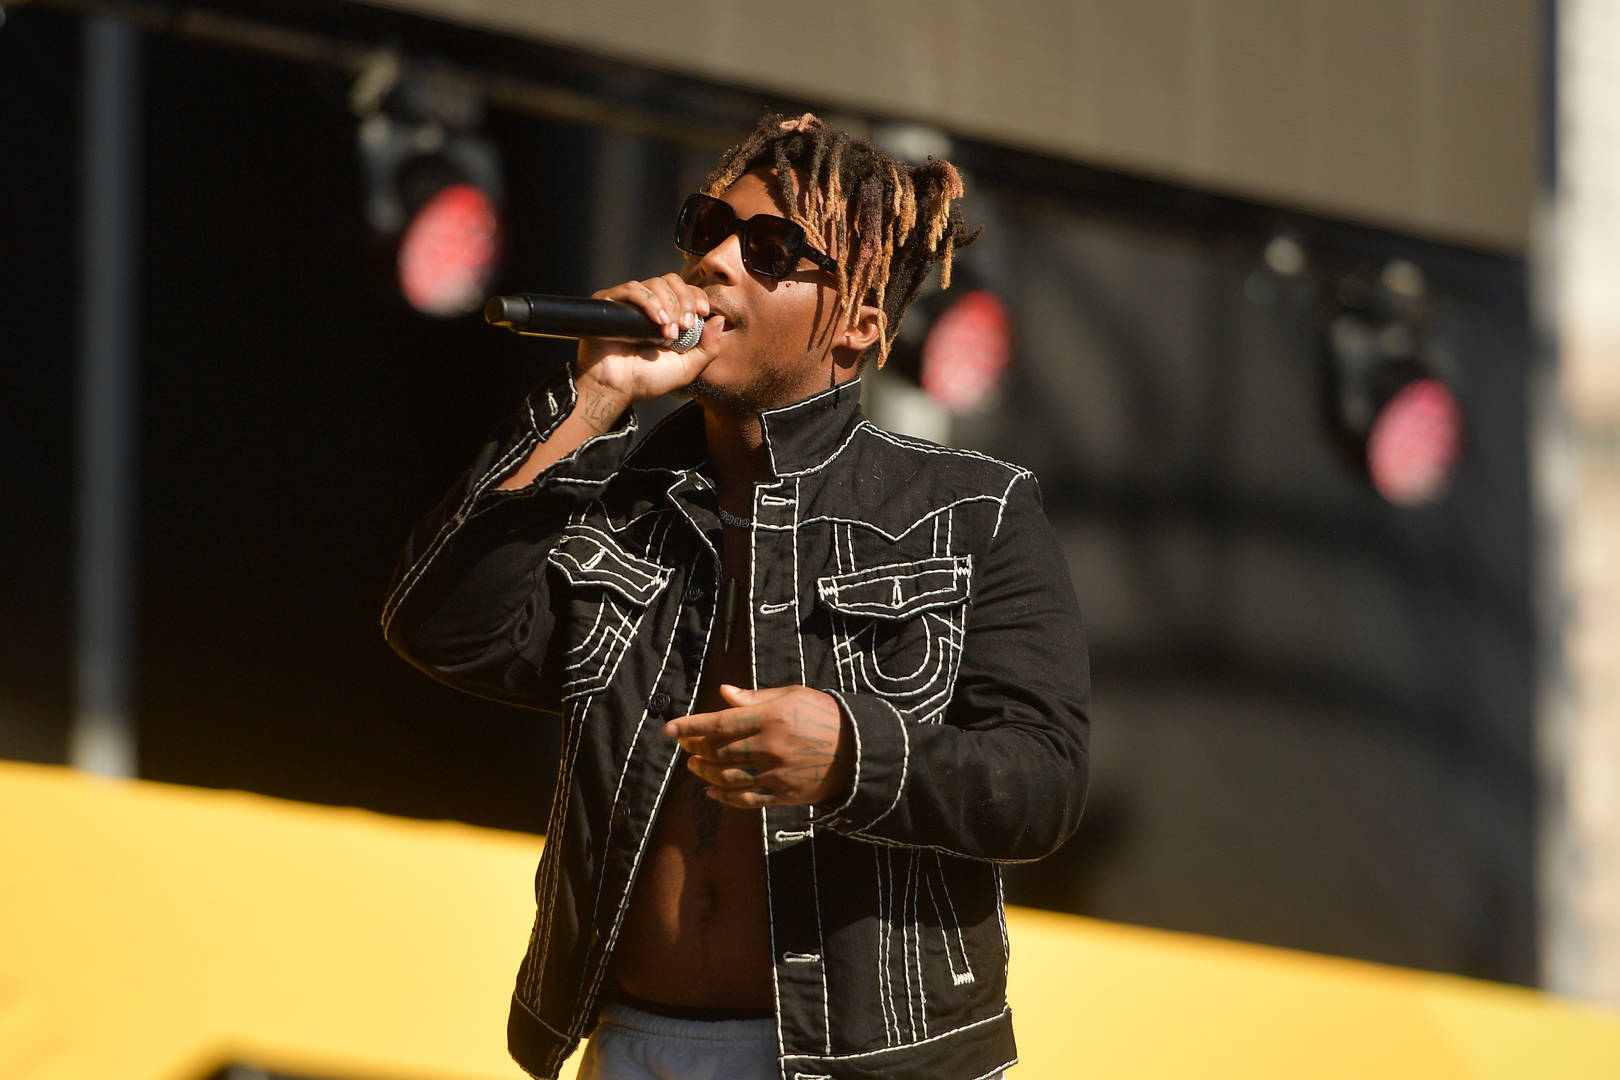 Rapper Juice WRLD allegedly popped pills before sudden death; Deets inside